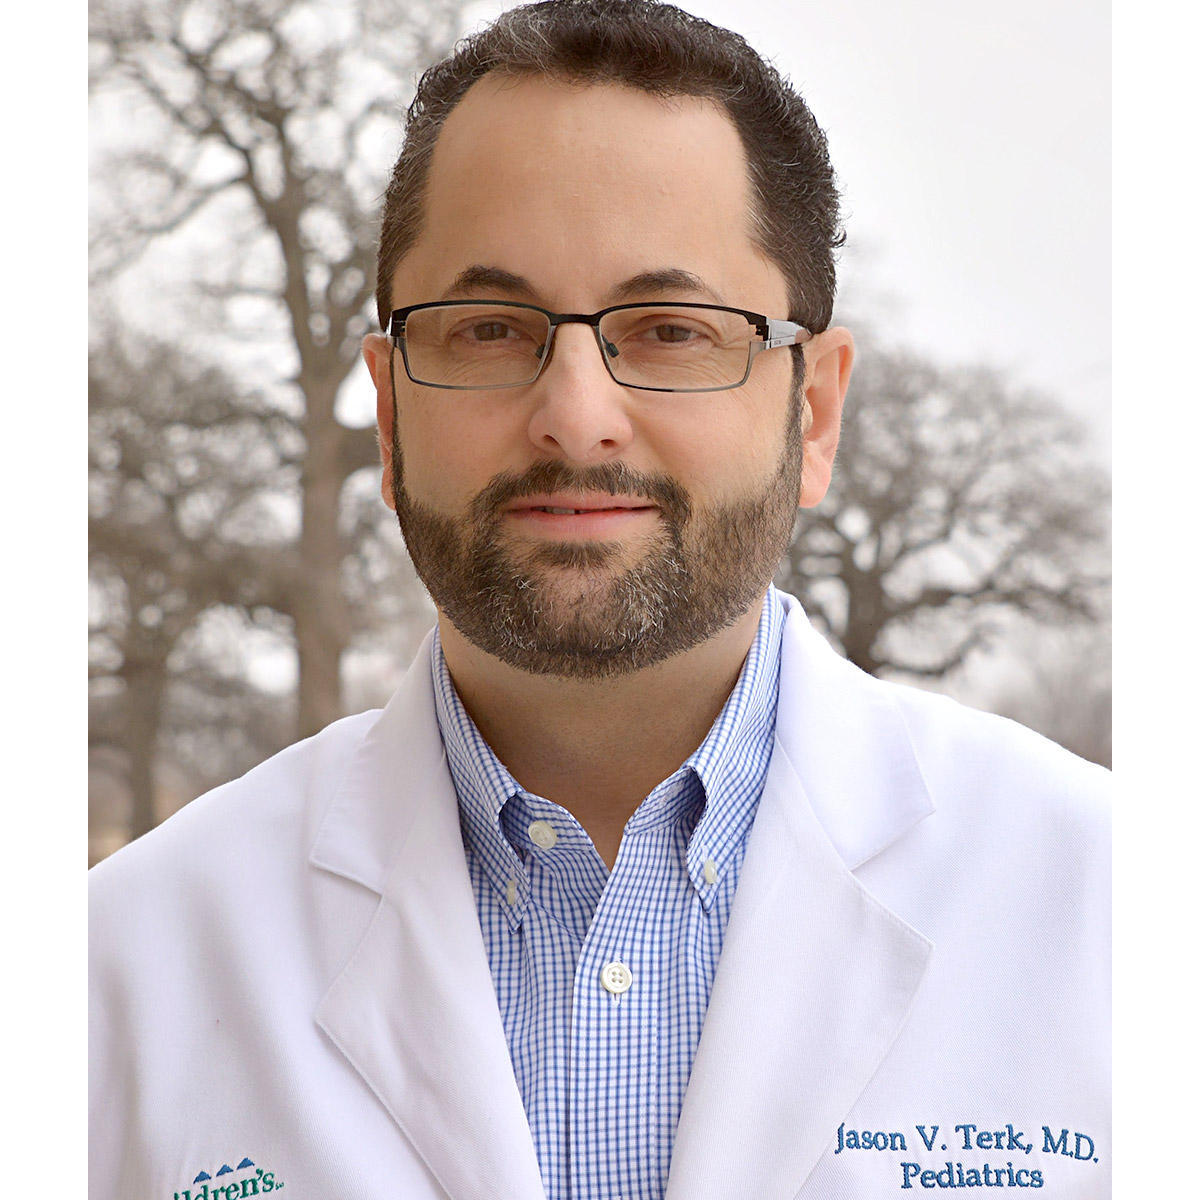 Jason Terk, MD